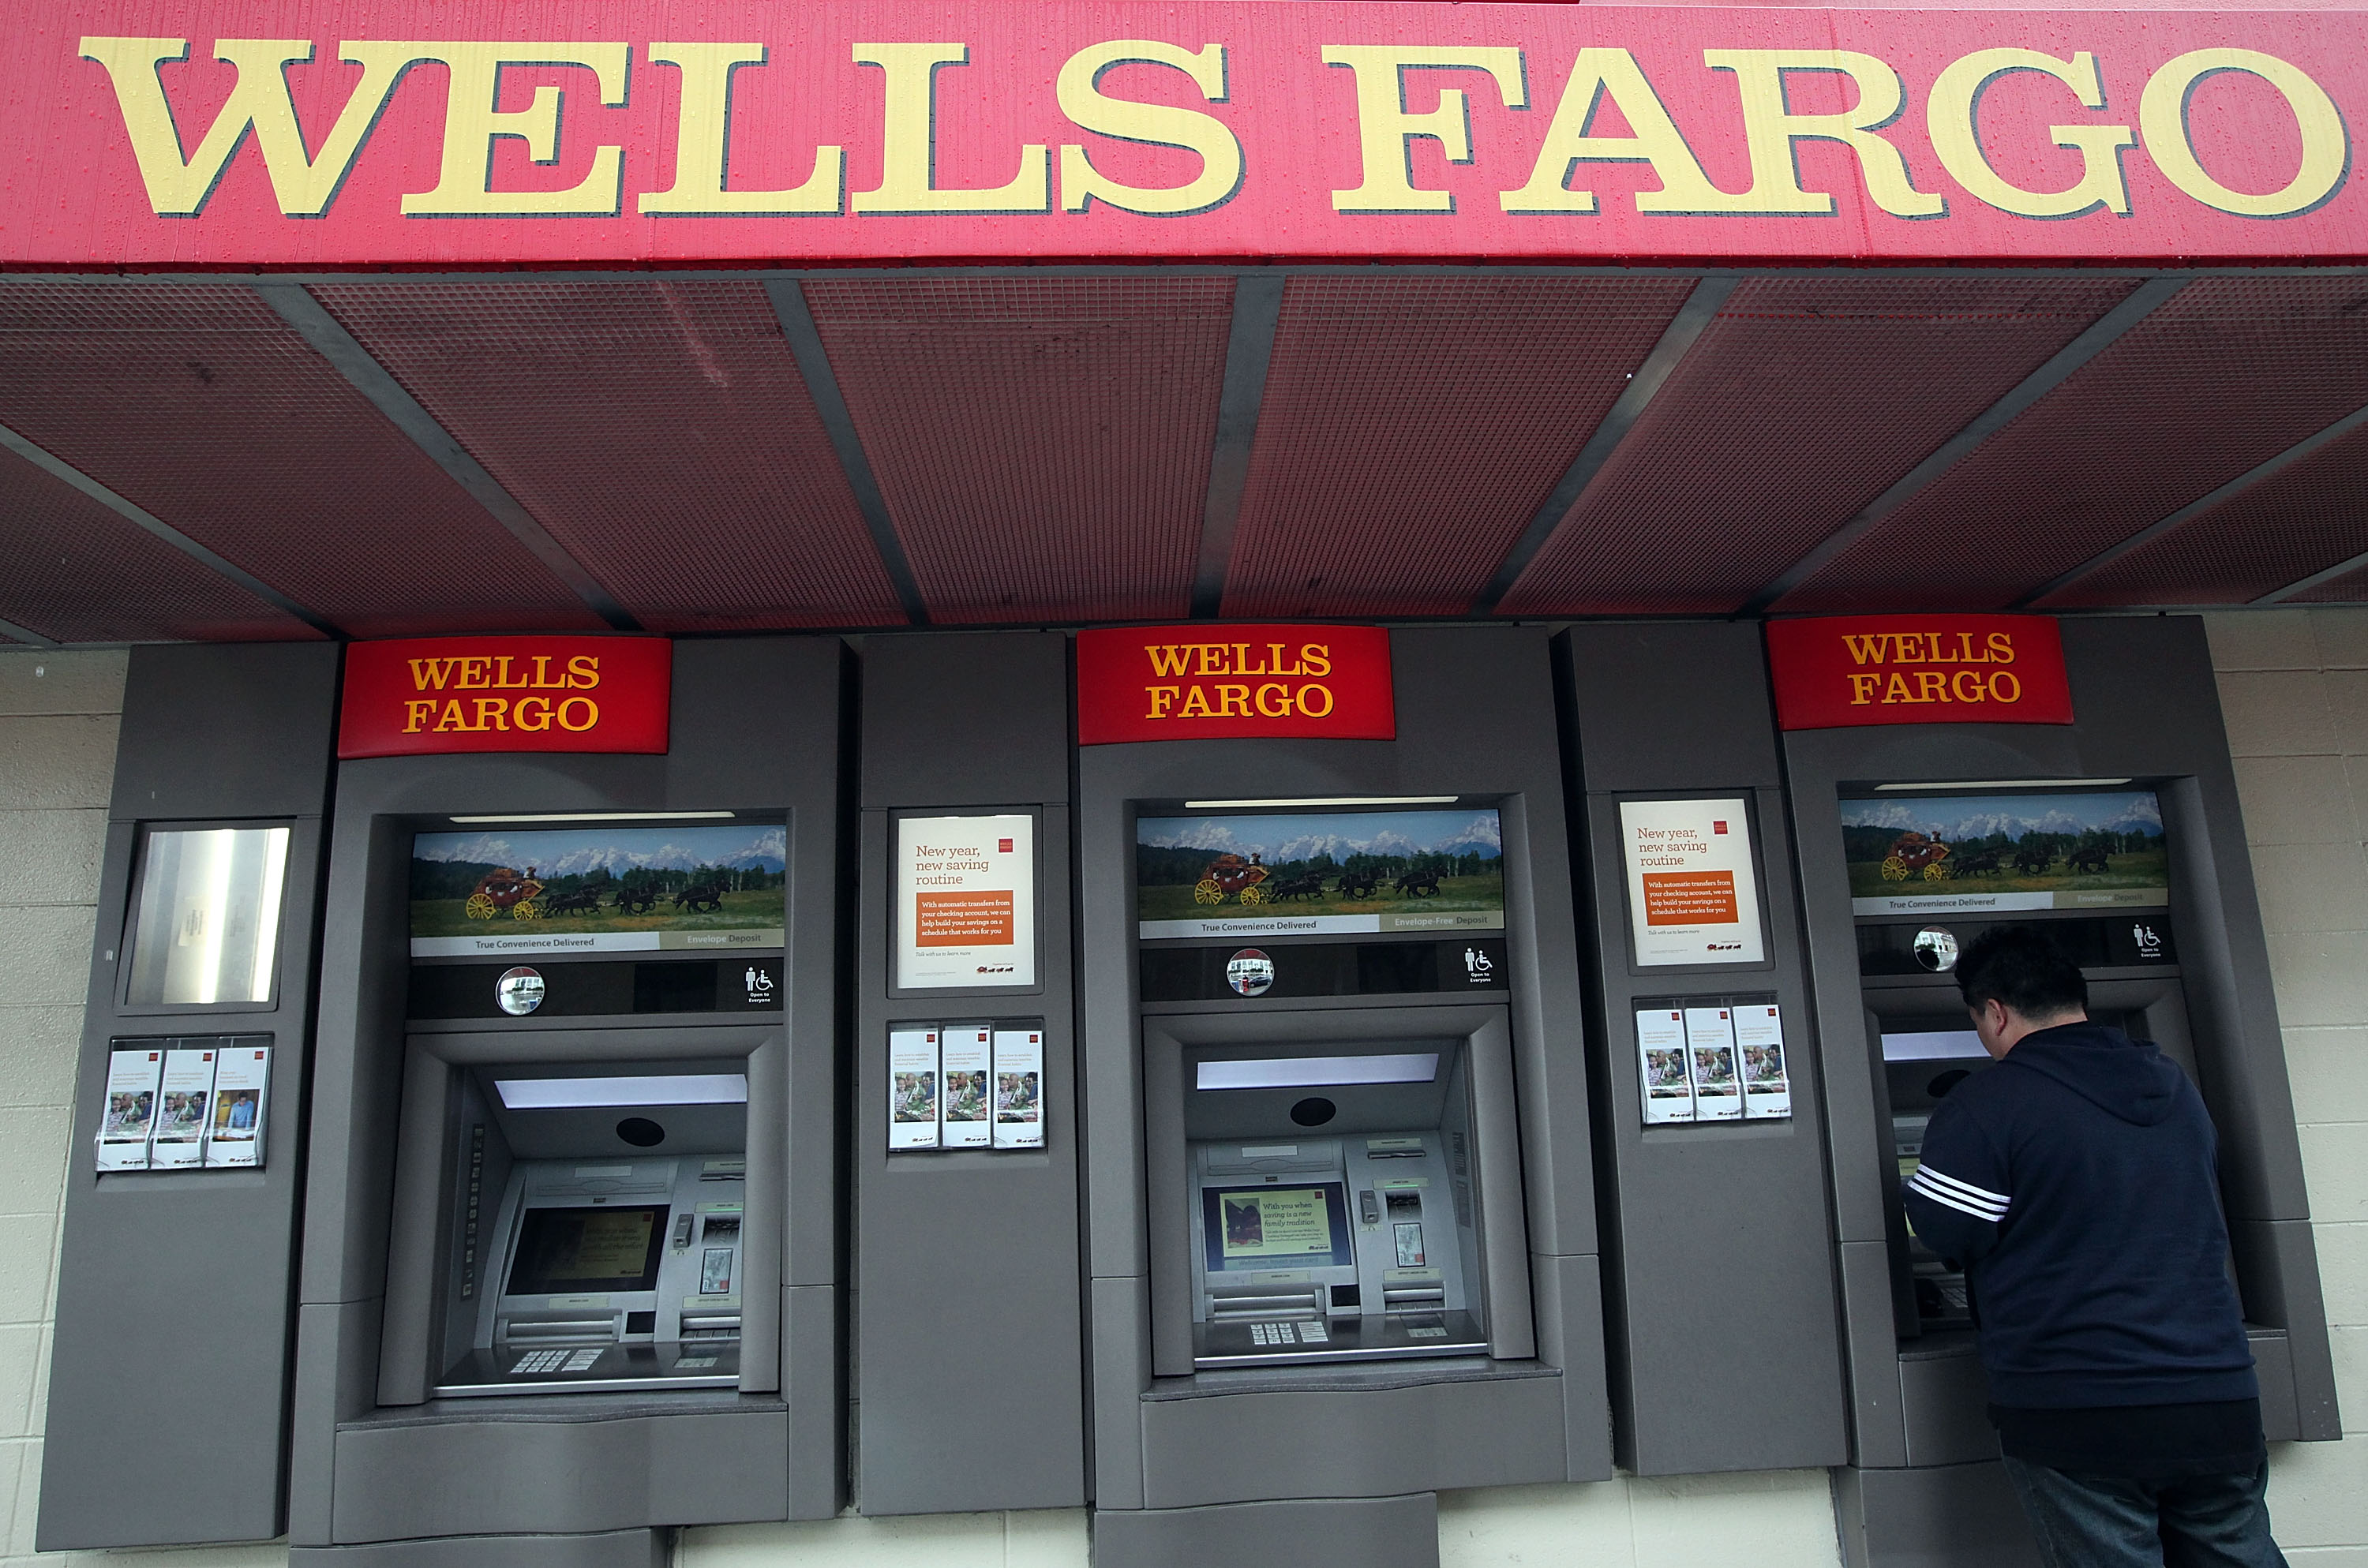 oakland considers divesting from wells fargo news fix kqed news wells fargo branch in san francisco justin sullivan getty images